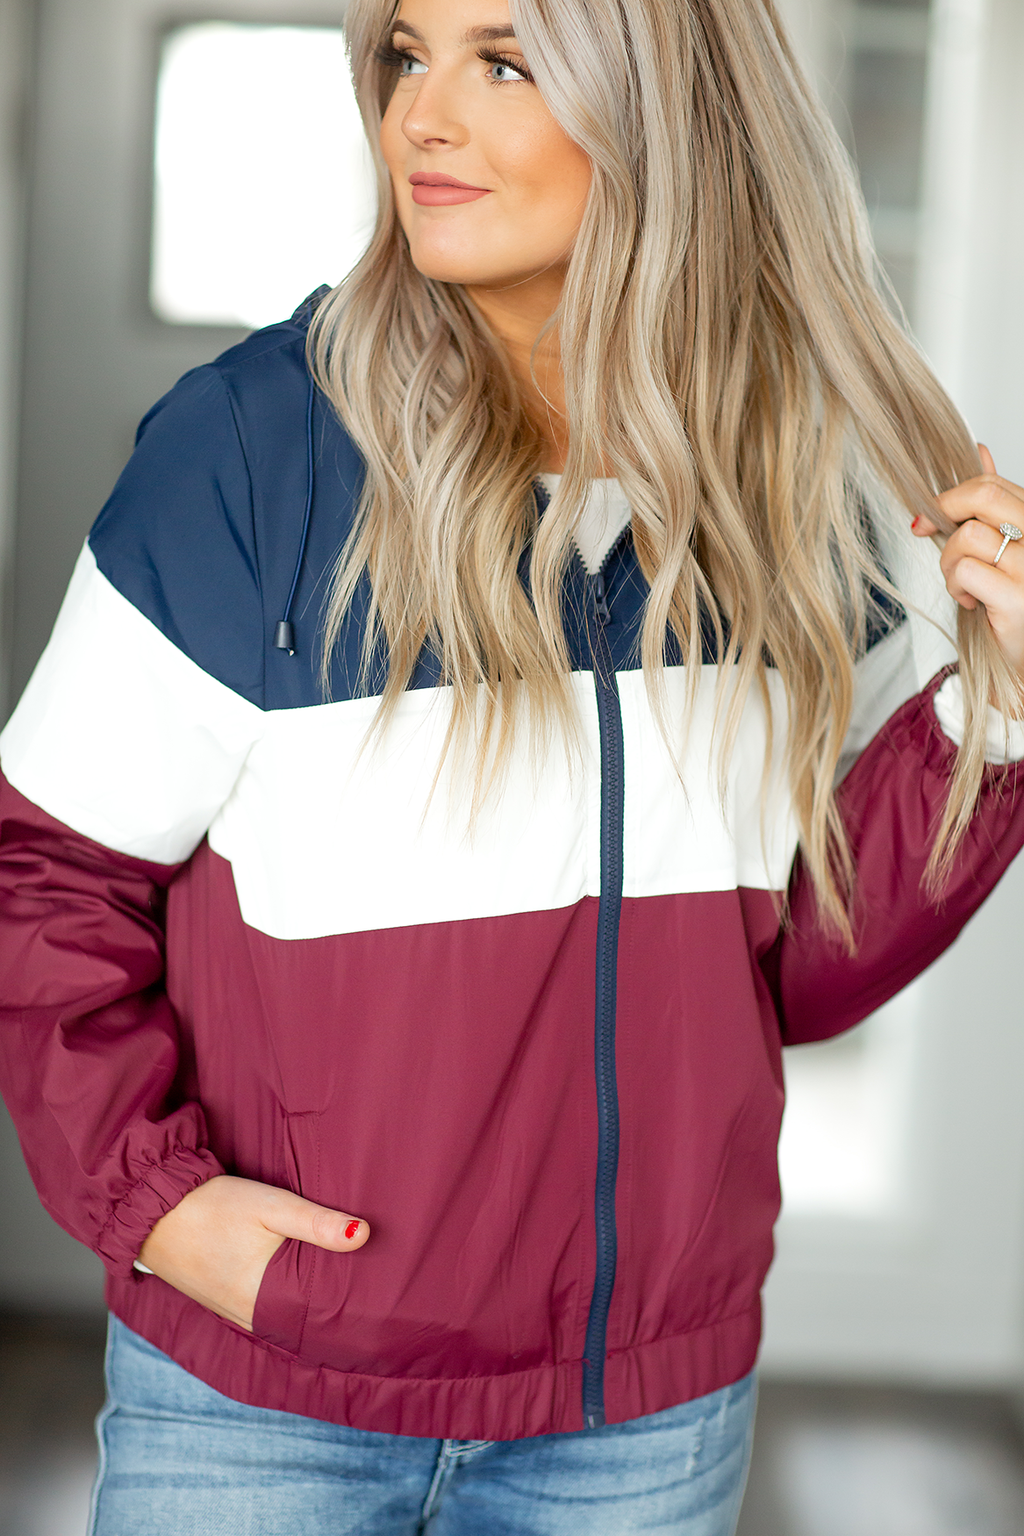 Forever In My Heart Windbreaker in Navy, White and Burgundy (SALE)